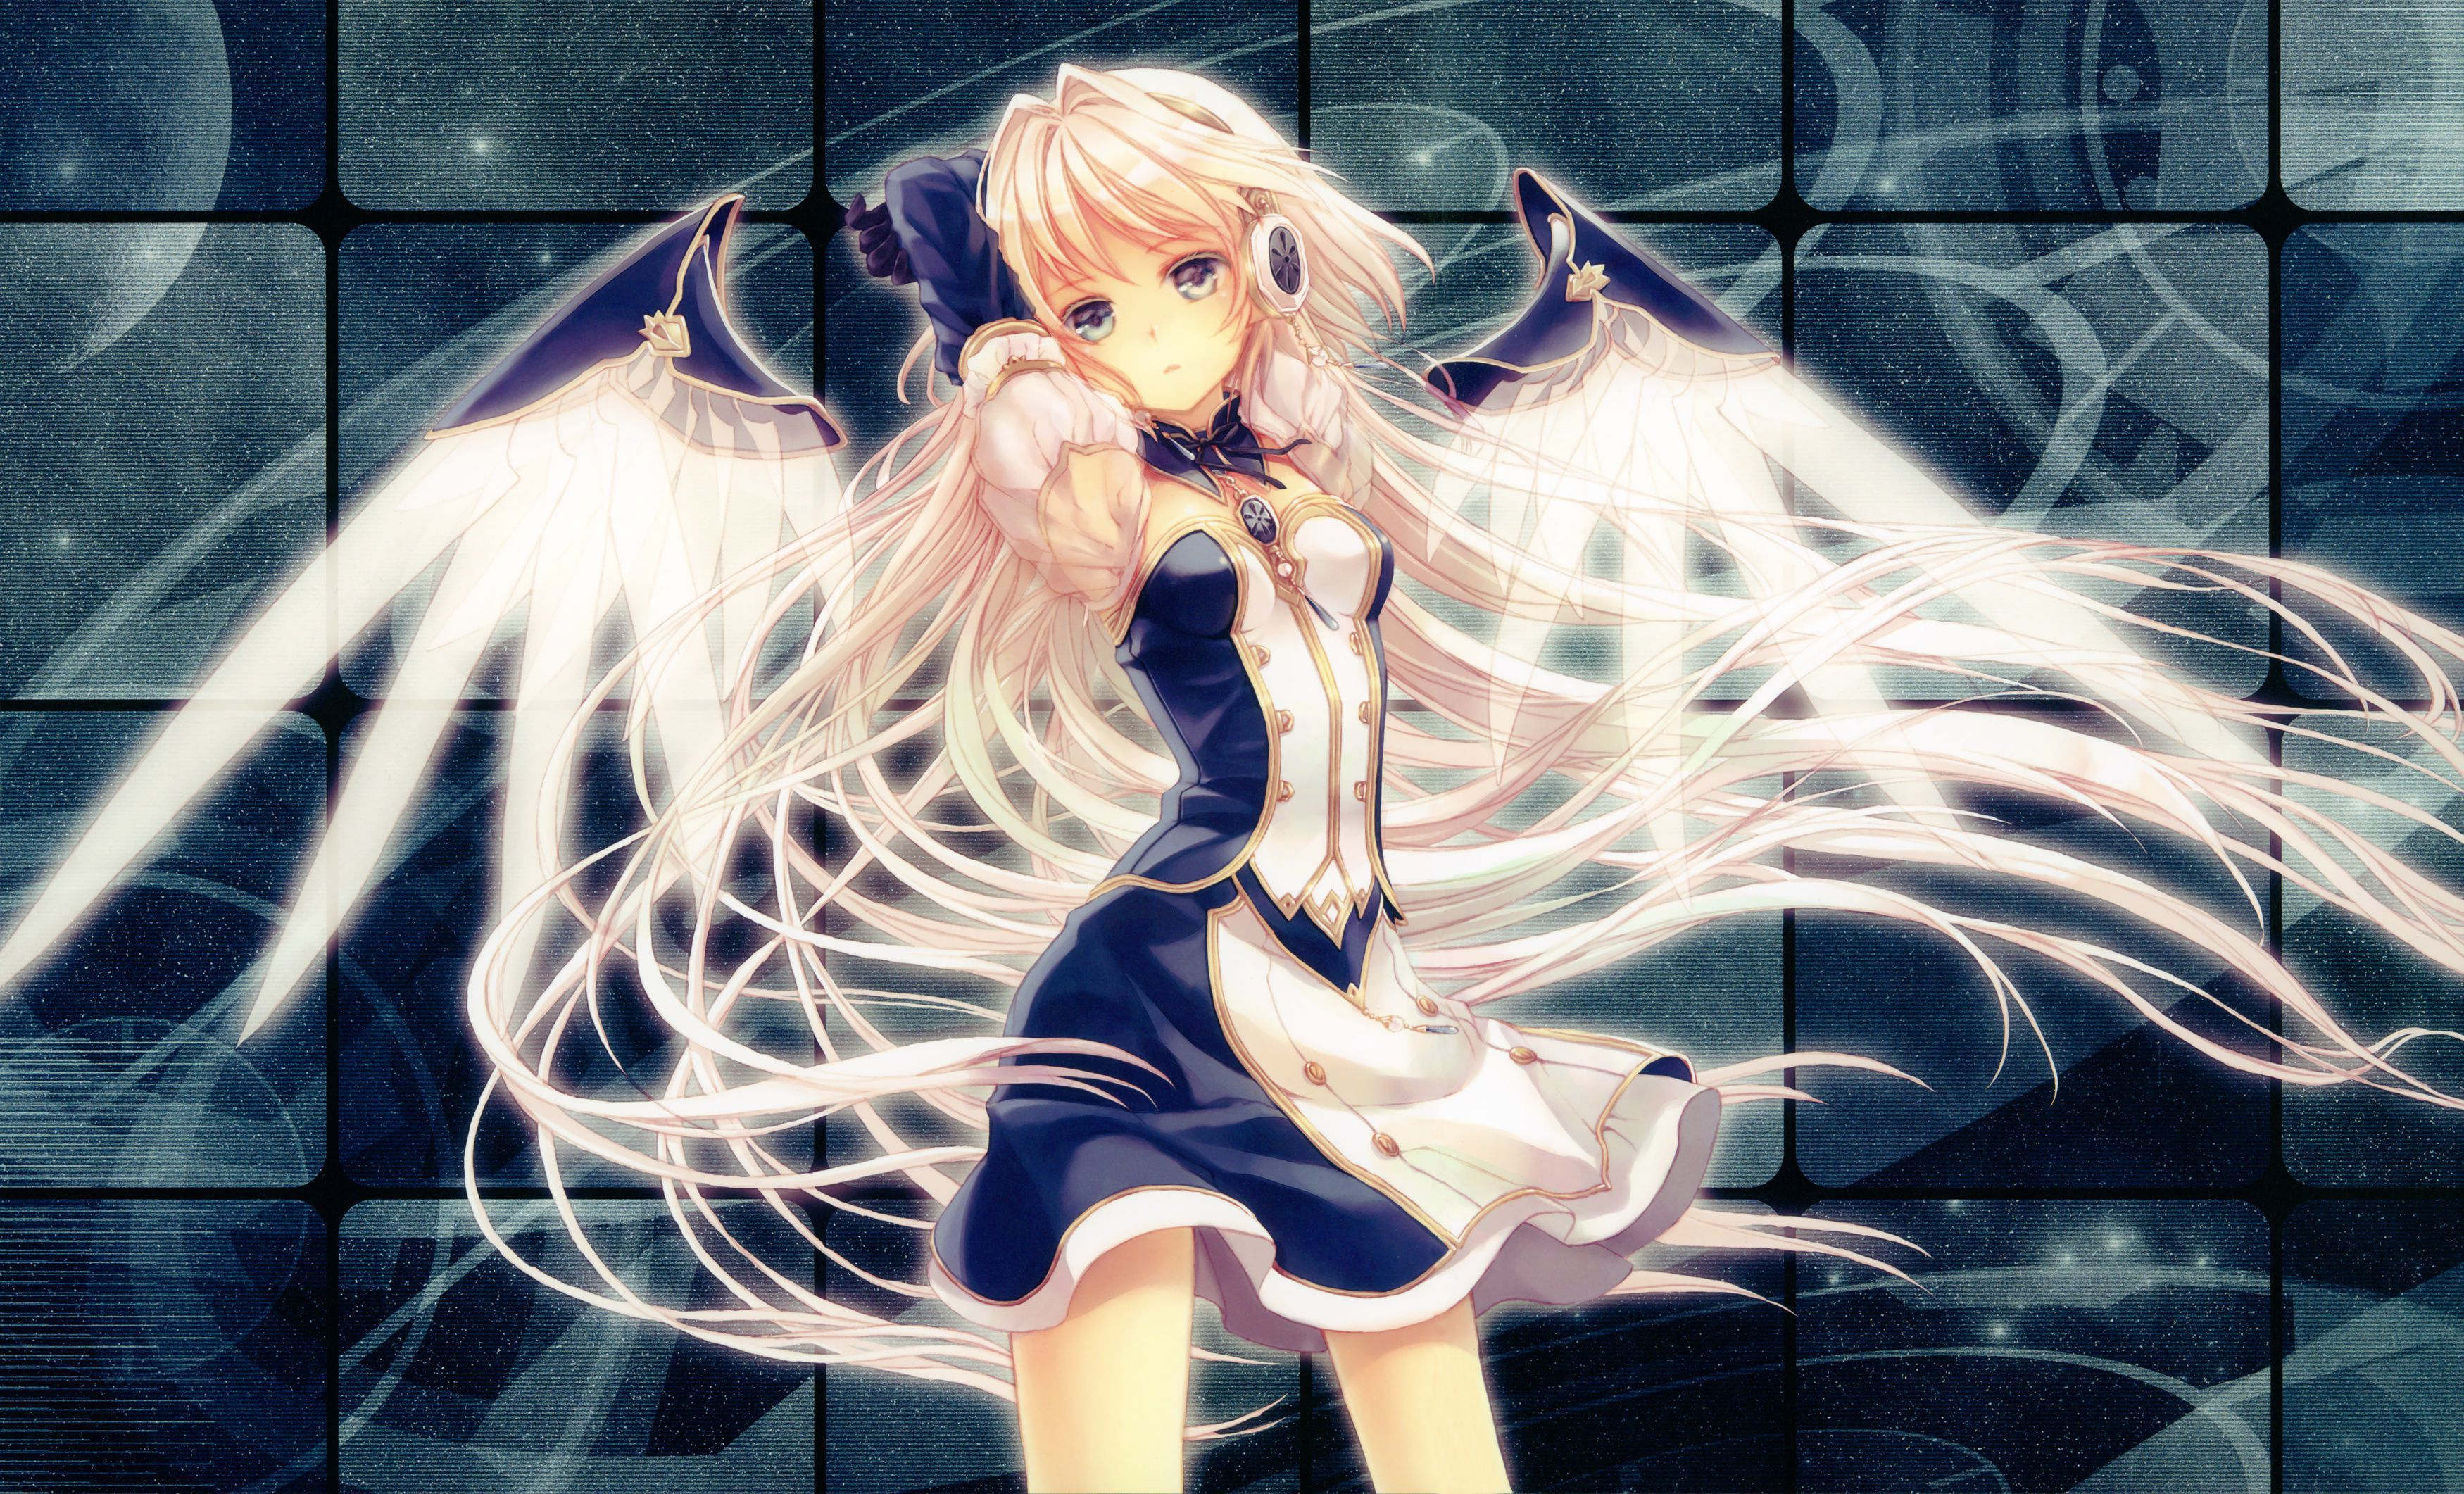 Anime angel wallpapers backgrounds - Anime wallpaper angel ...